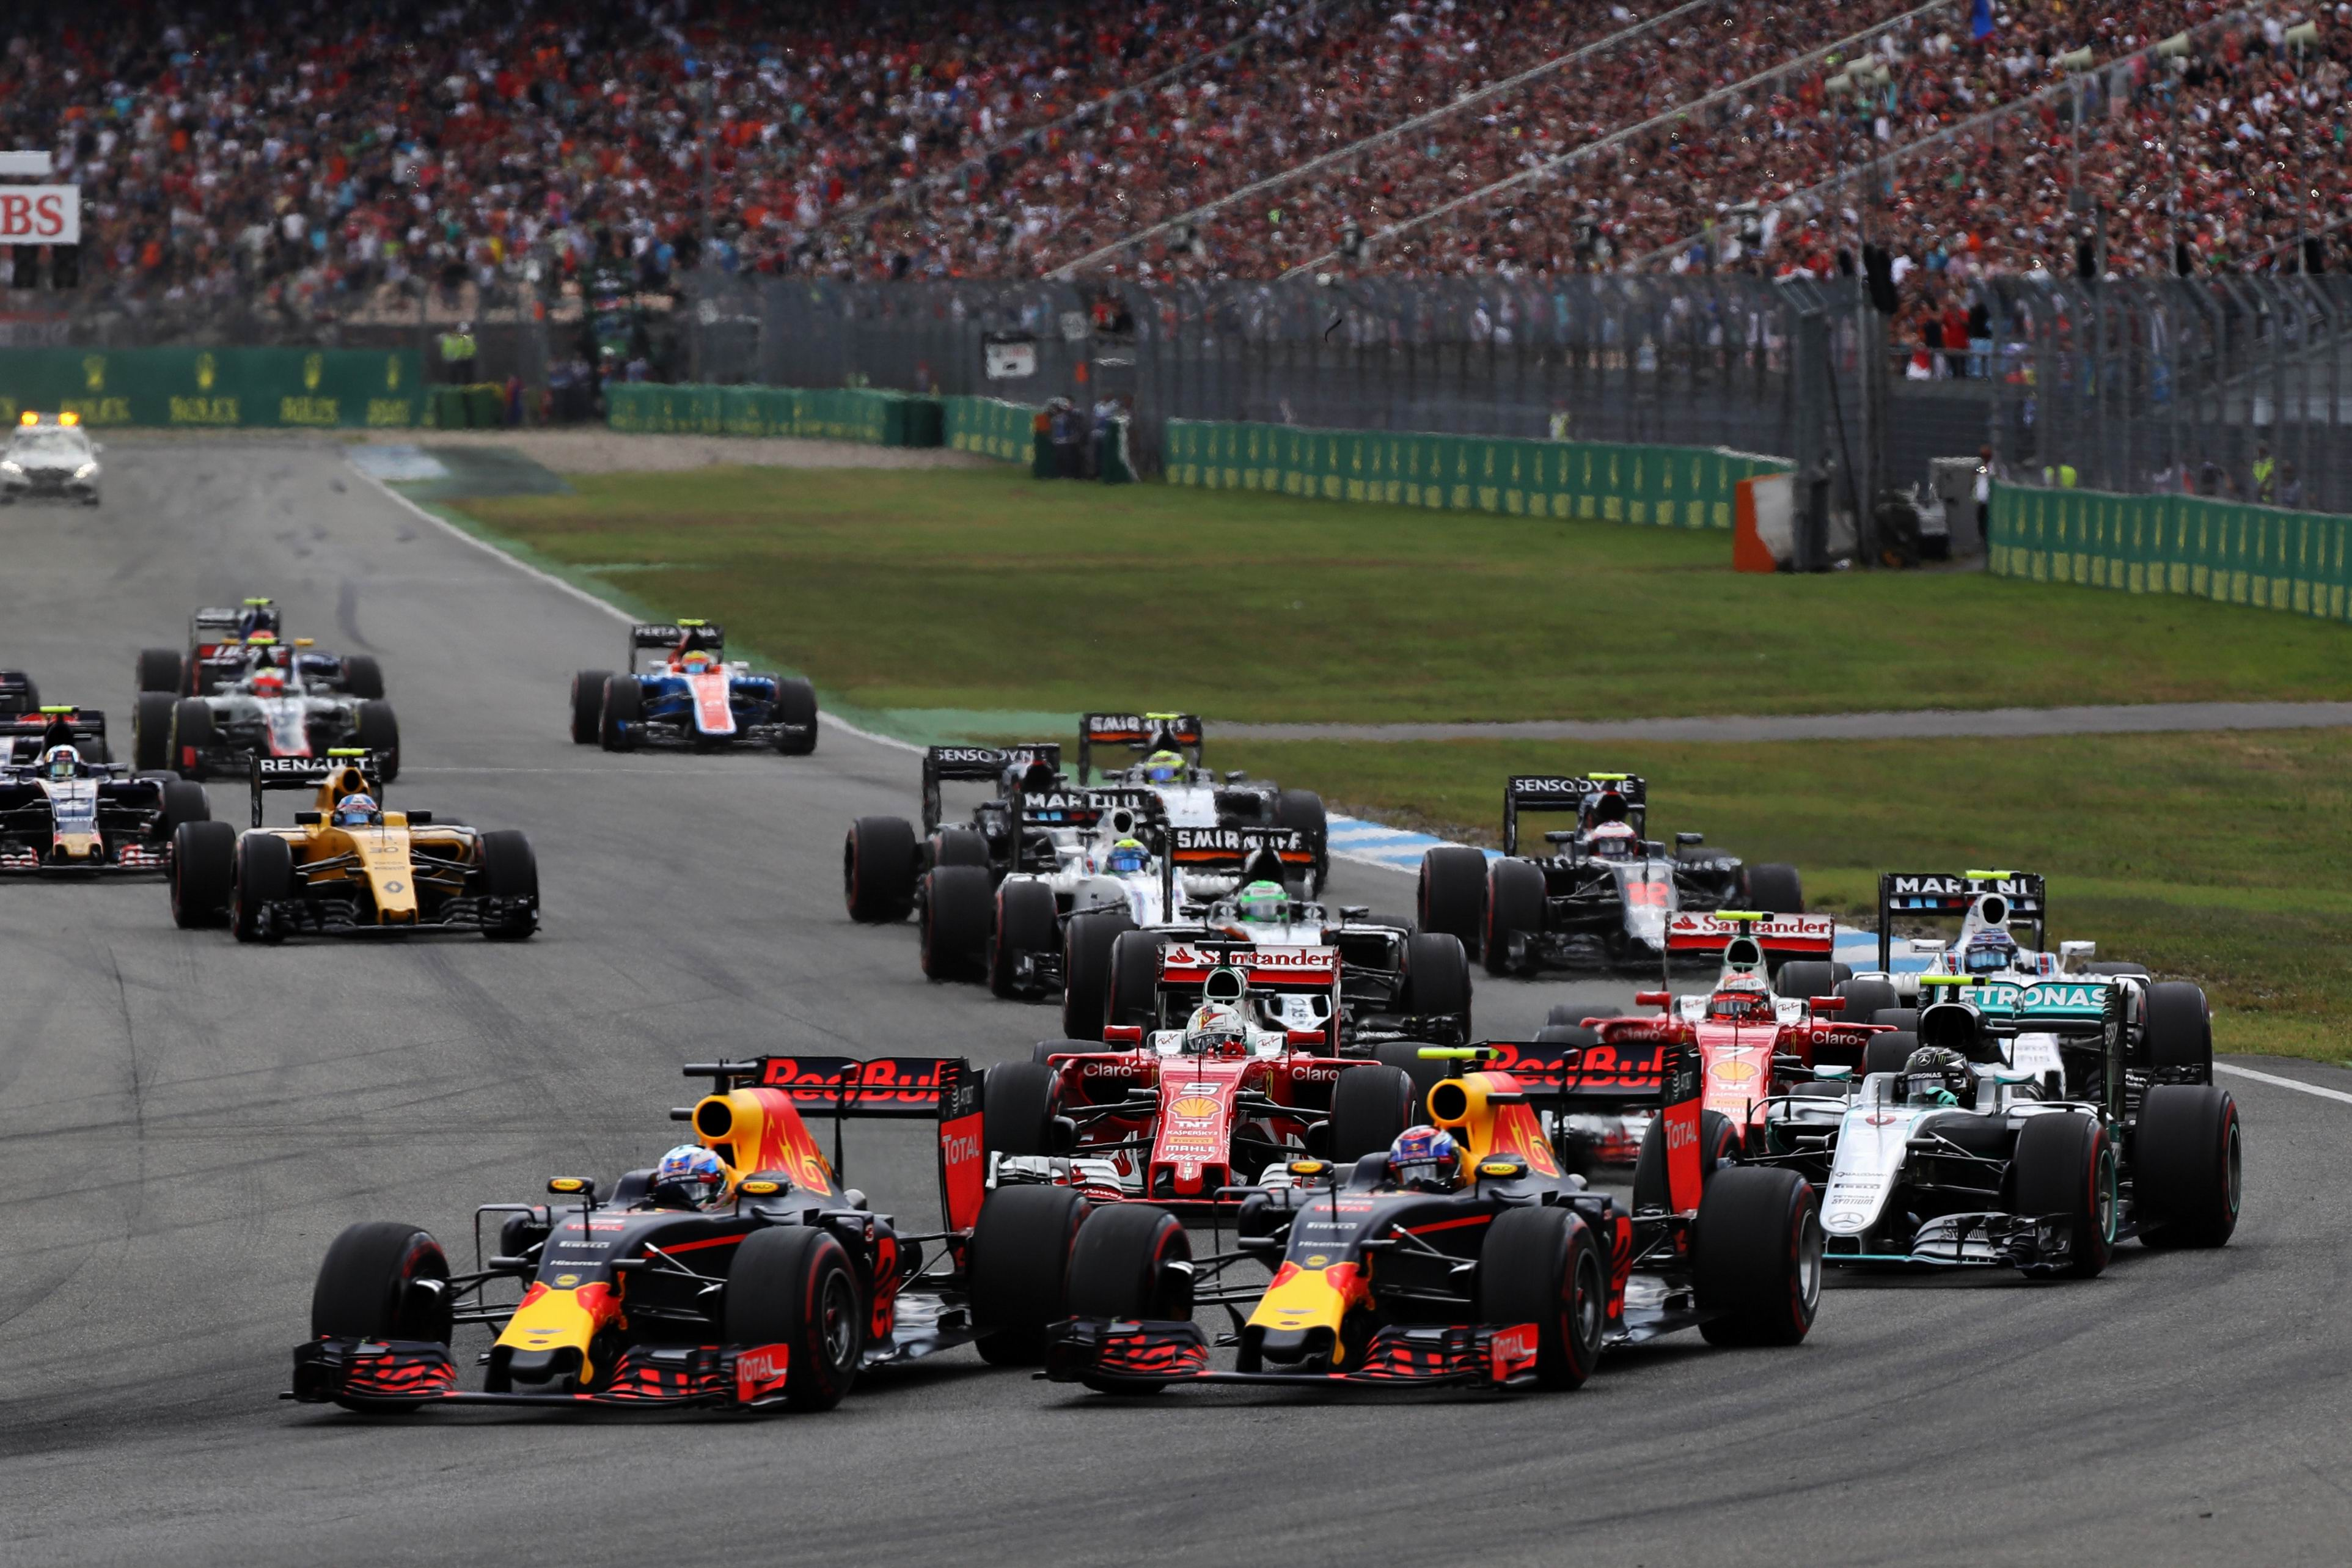 German F1 GP: Ricciardo finishes impressive second as Hamilton streaks to win